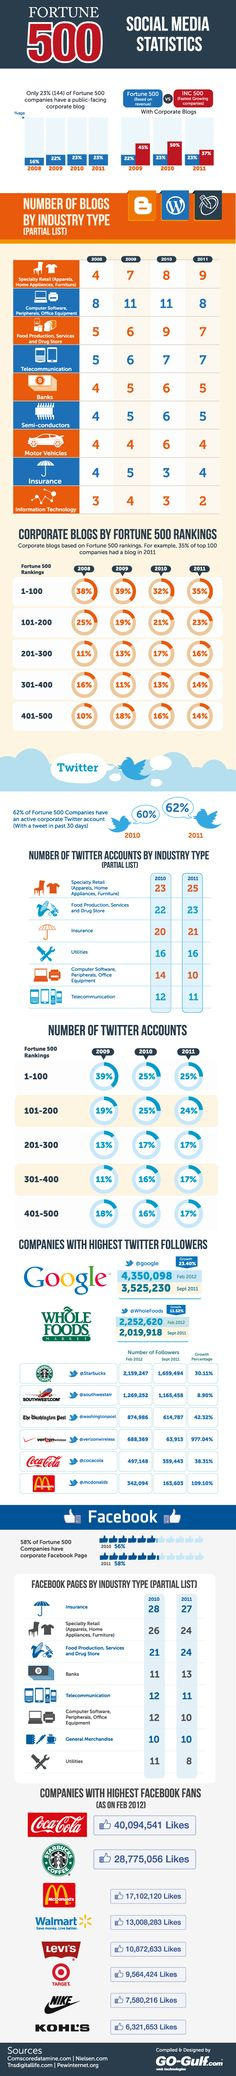 Infographic: Twitter Is More Popular With Fortune 500 Companies Than Facebook